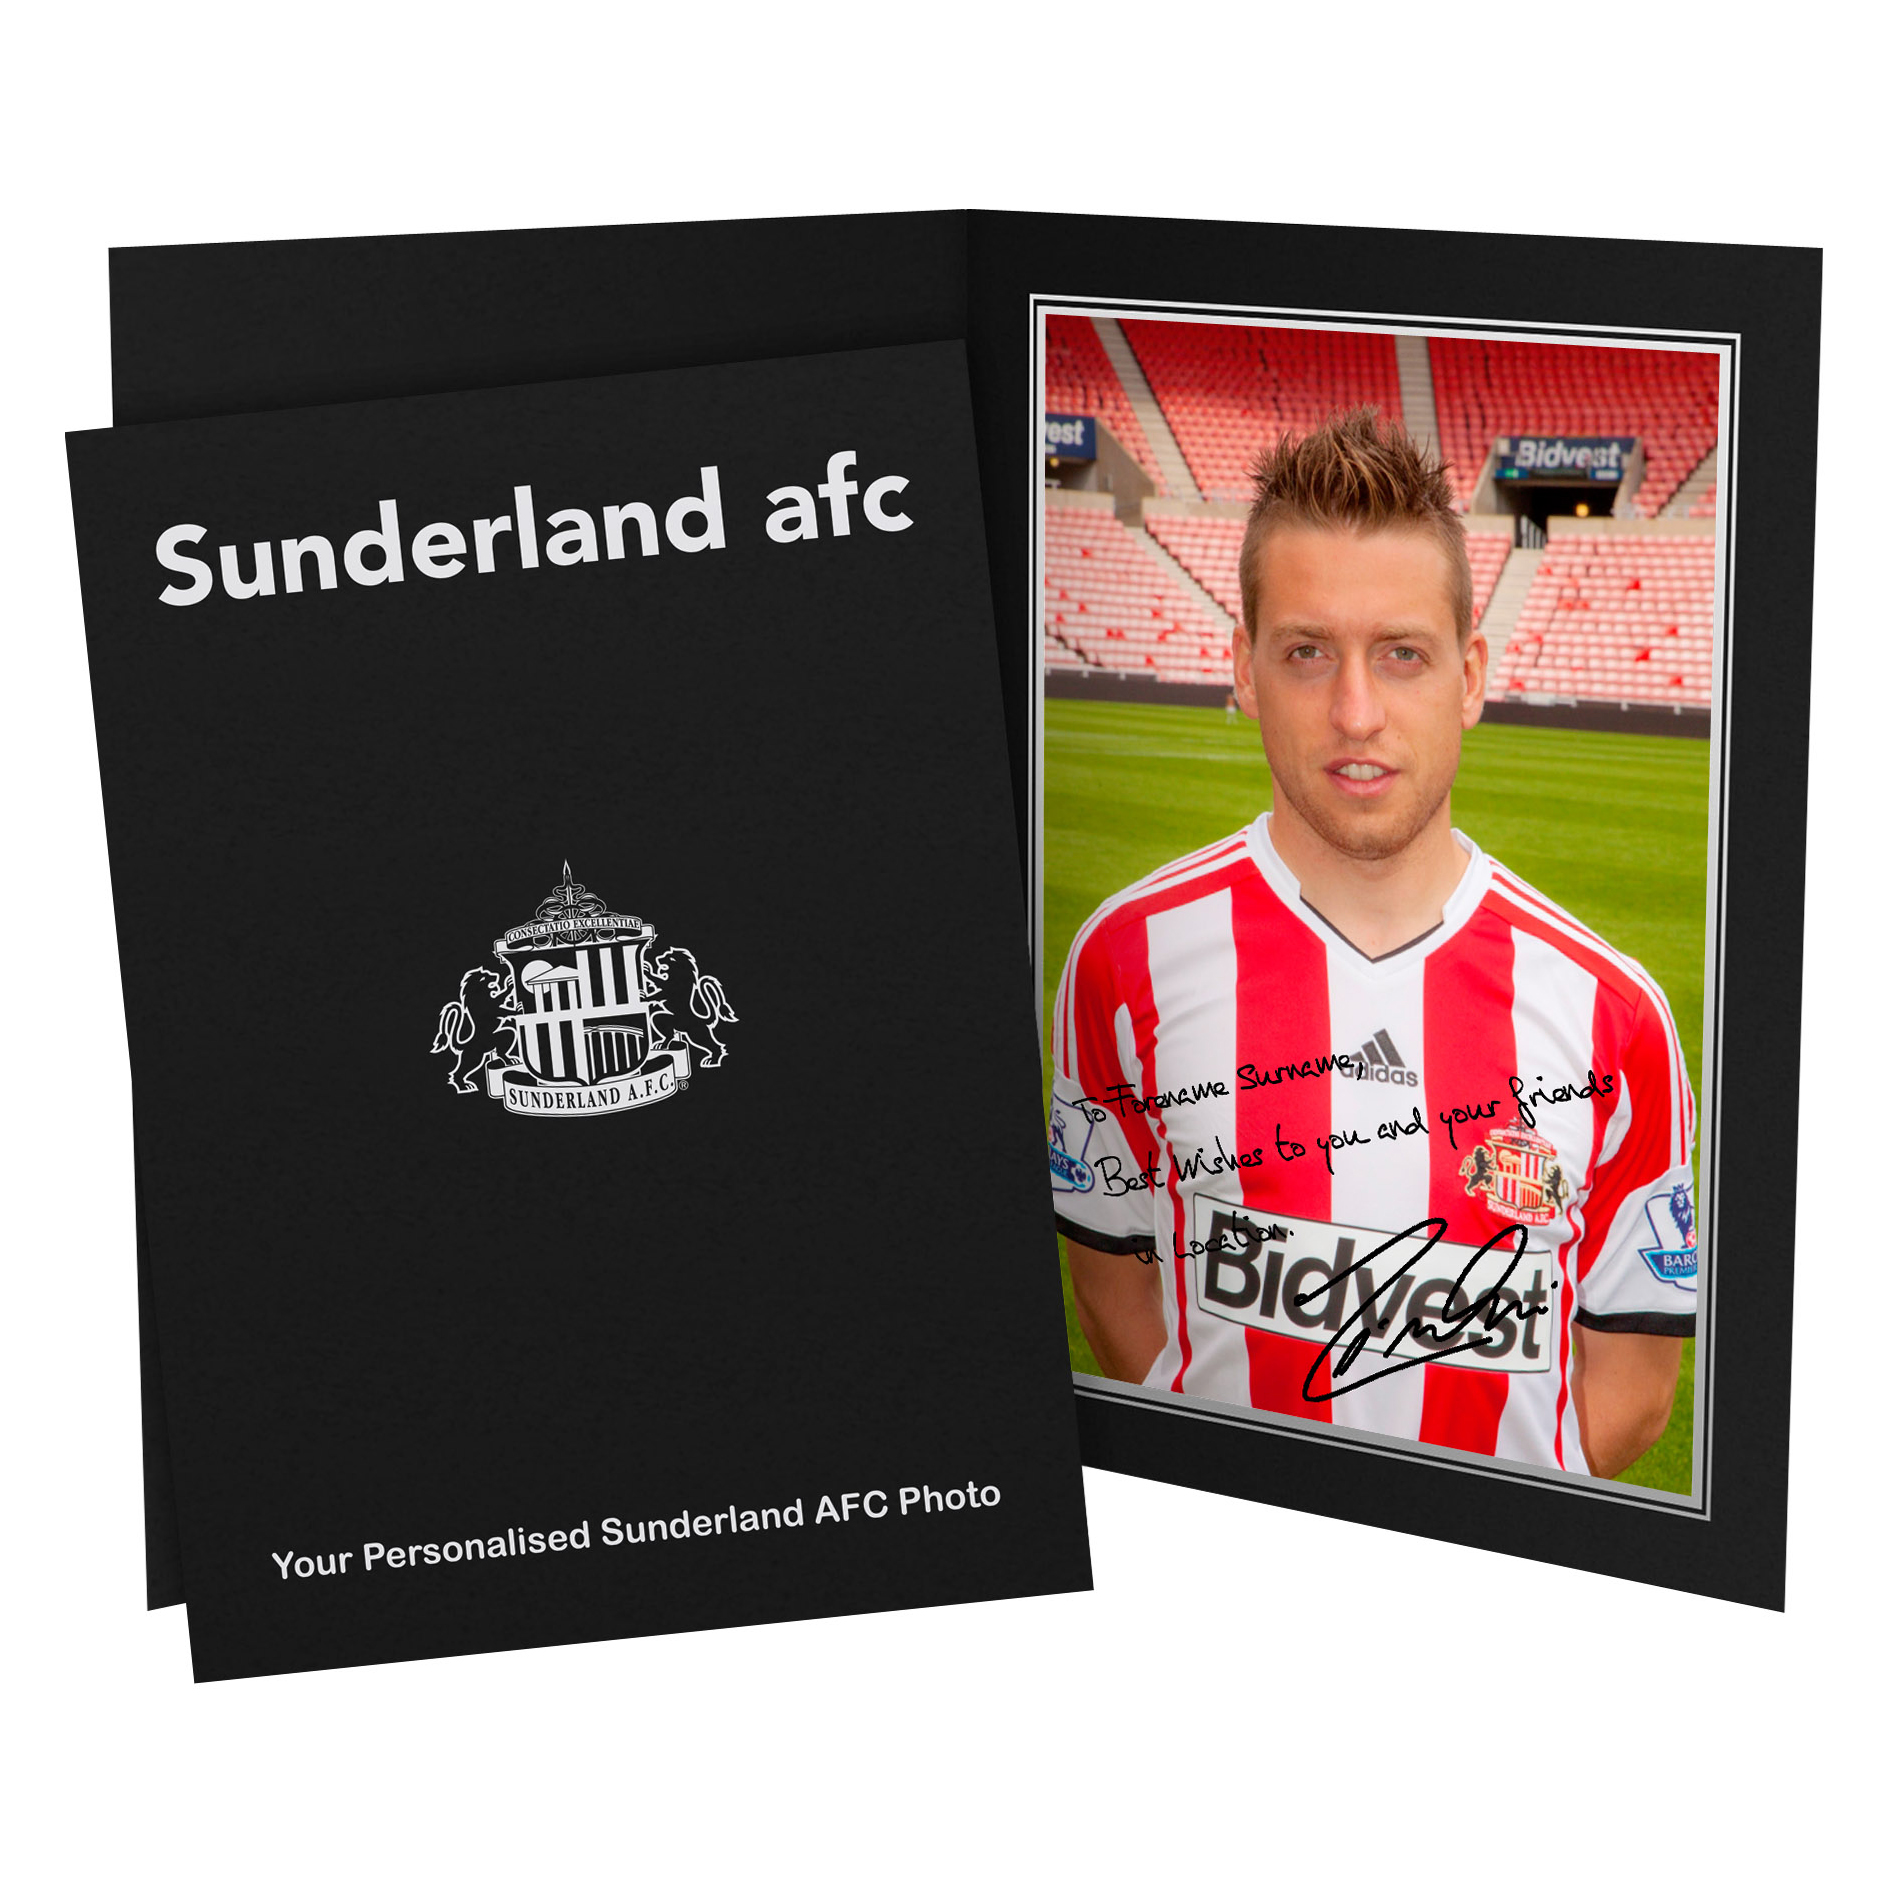 Sunderland Personalised Signature Photo in Presentation Folder - Giaccherini